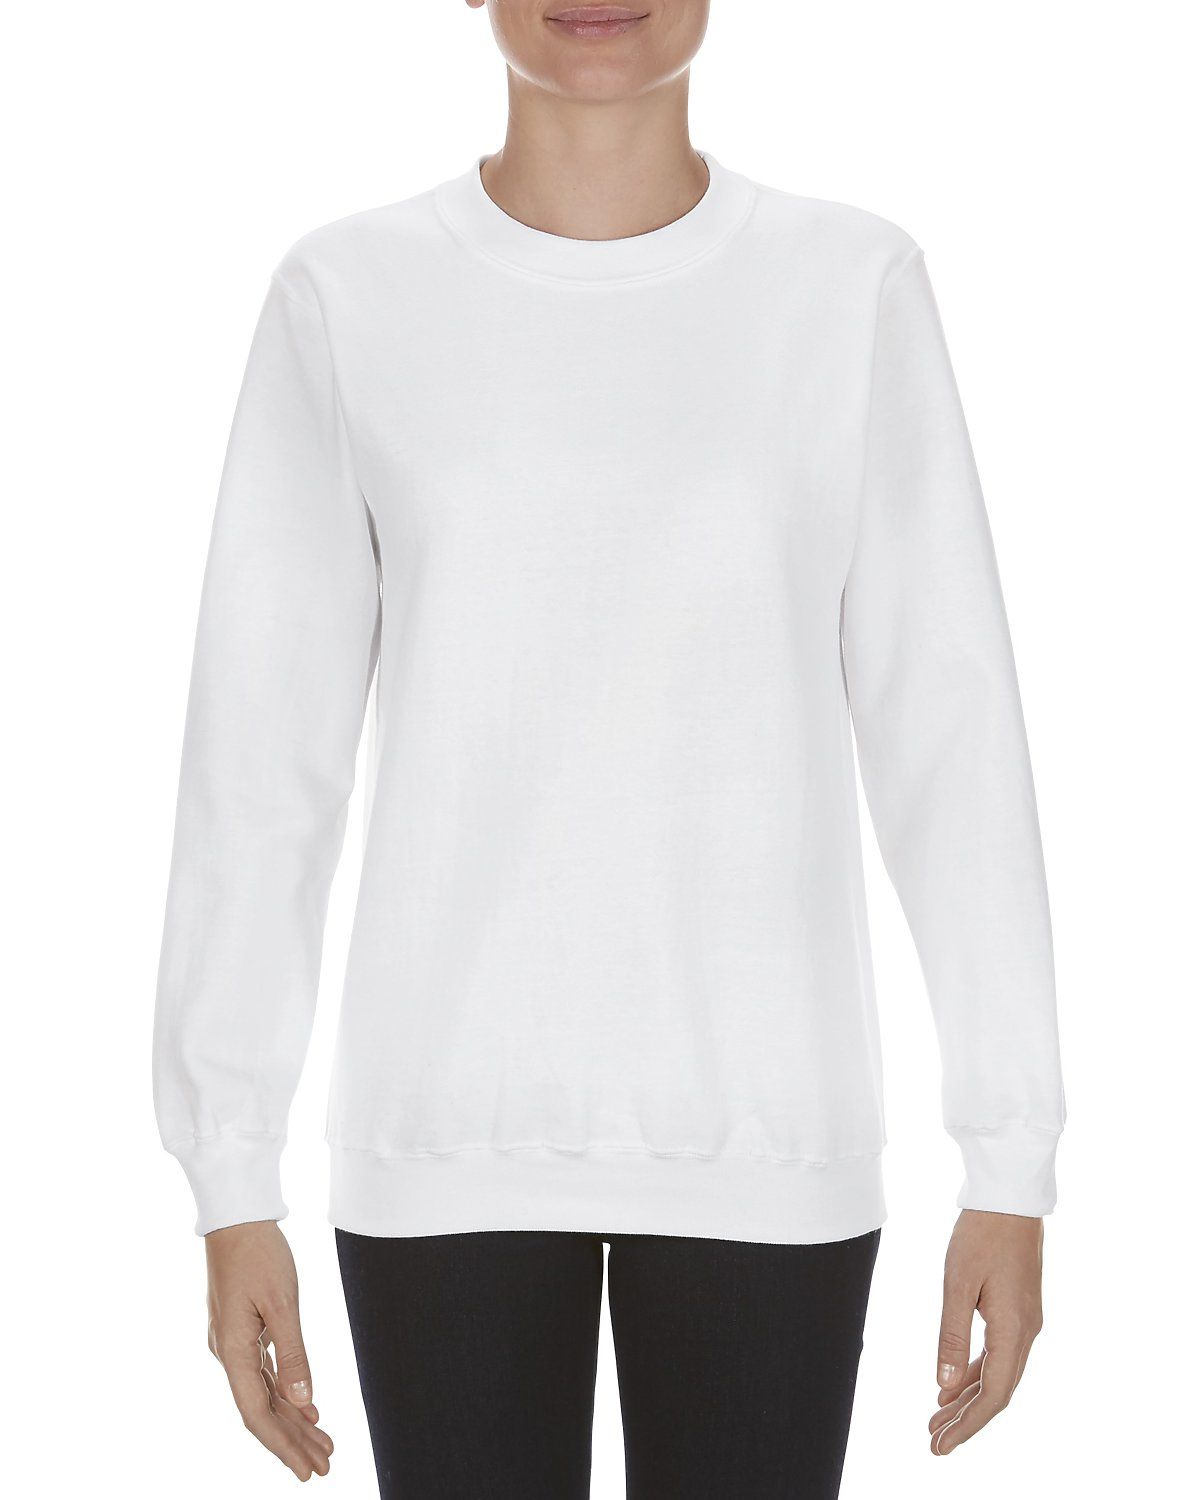 1572 Adult Sweatshirt